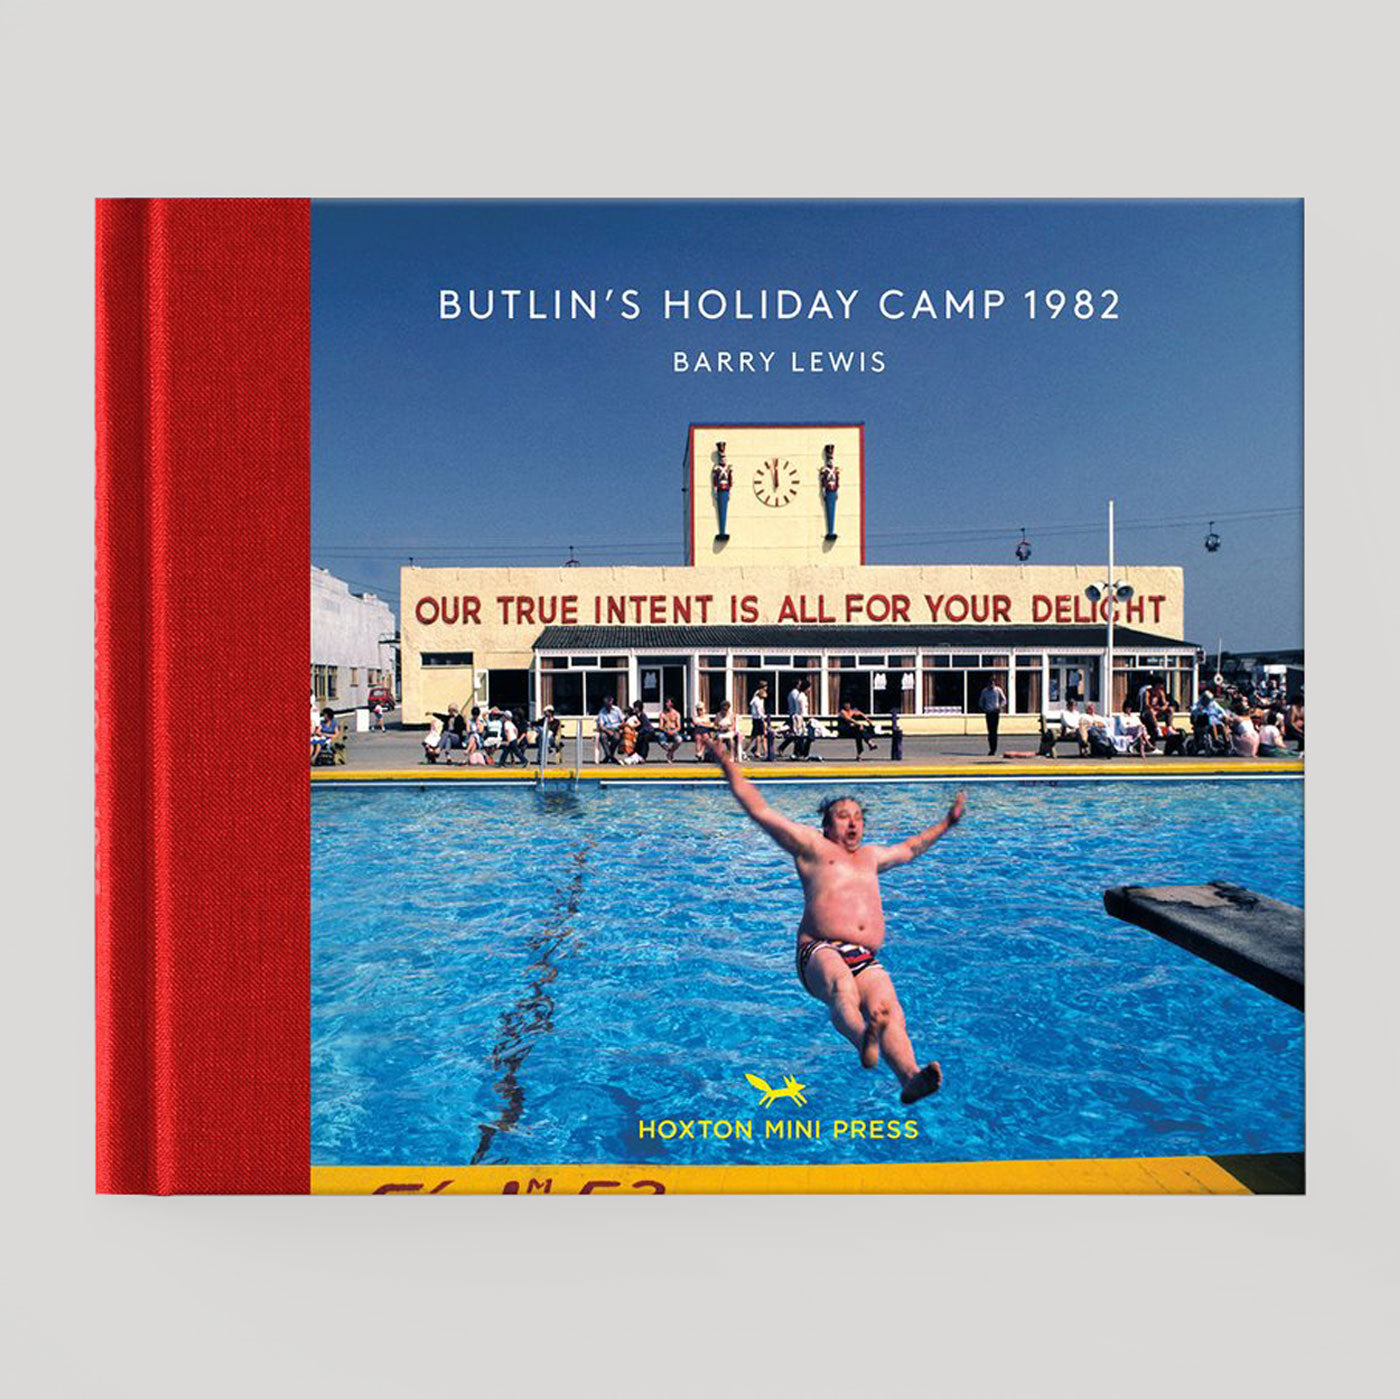 Butlin's Holiday Camp 1982 by Barry Lewis - Colours May Vary